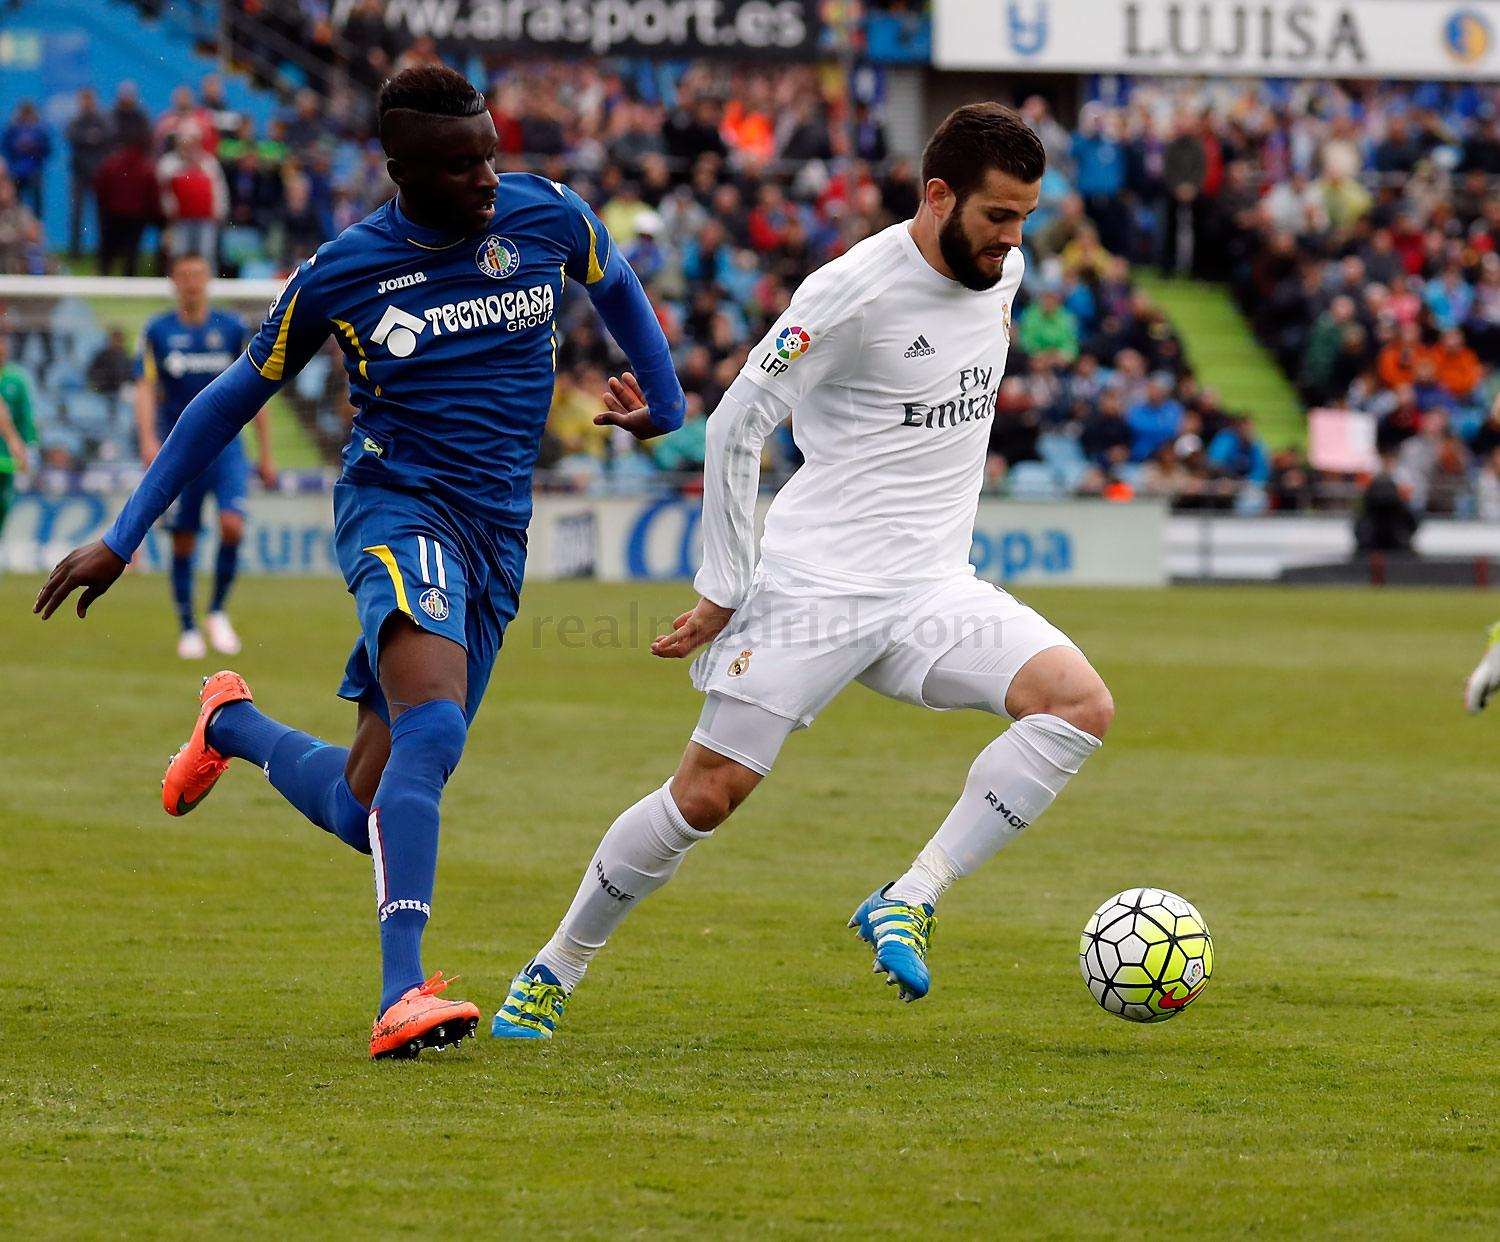 Real Madrid - Getafe - Real Madrid - 16-04-2016